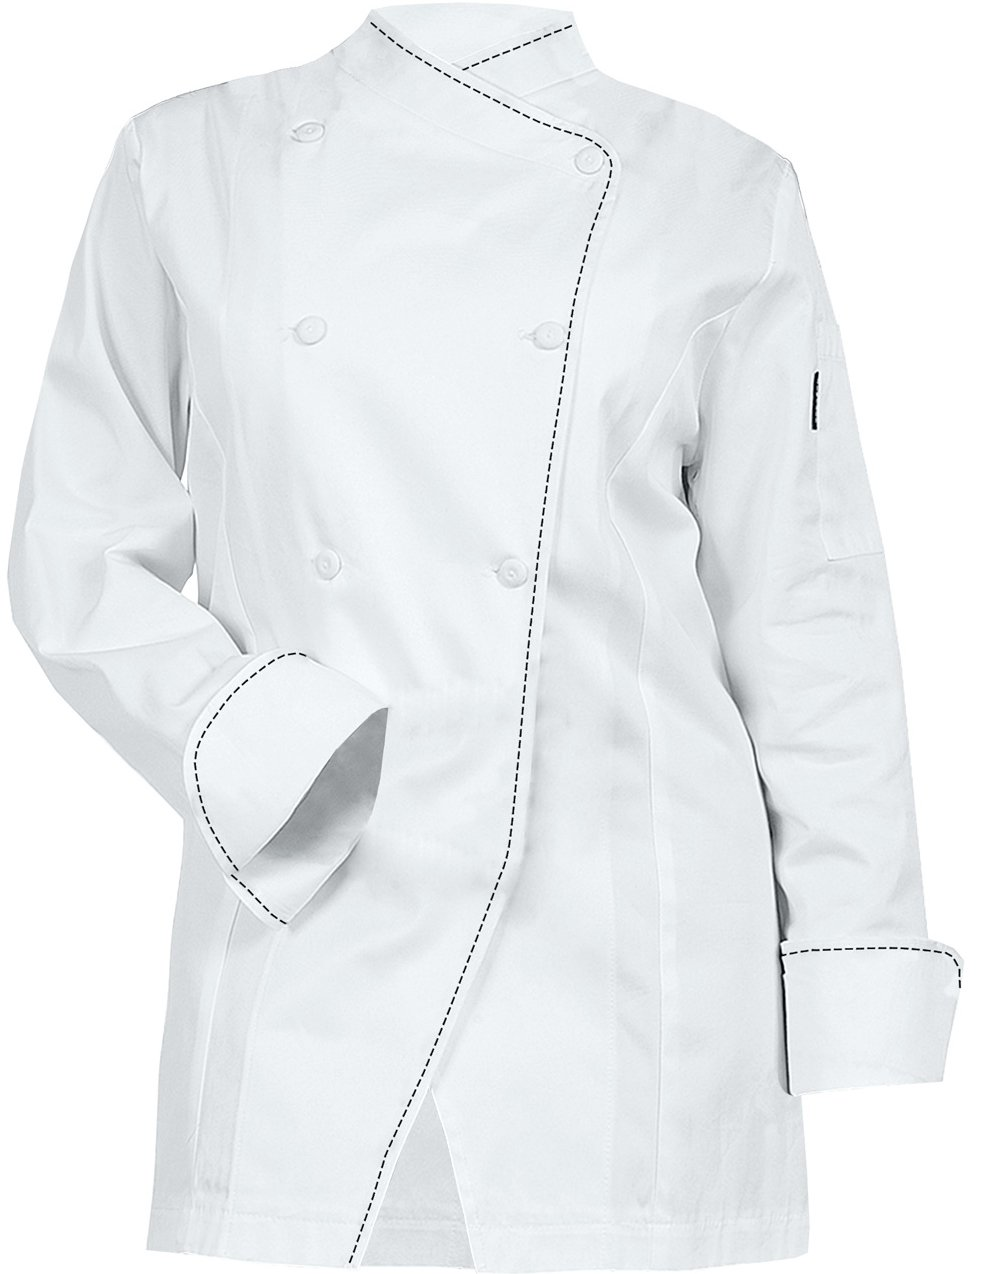 Newchef Fashion White Womens Chef Coat Black Saddle Stitch M White